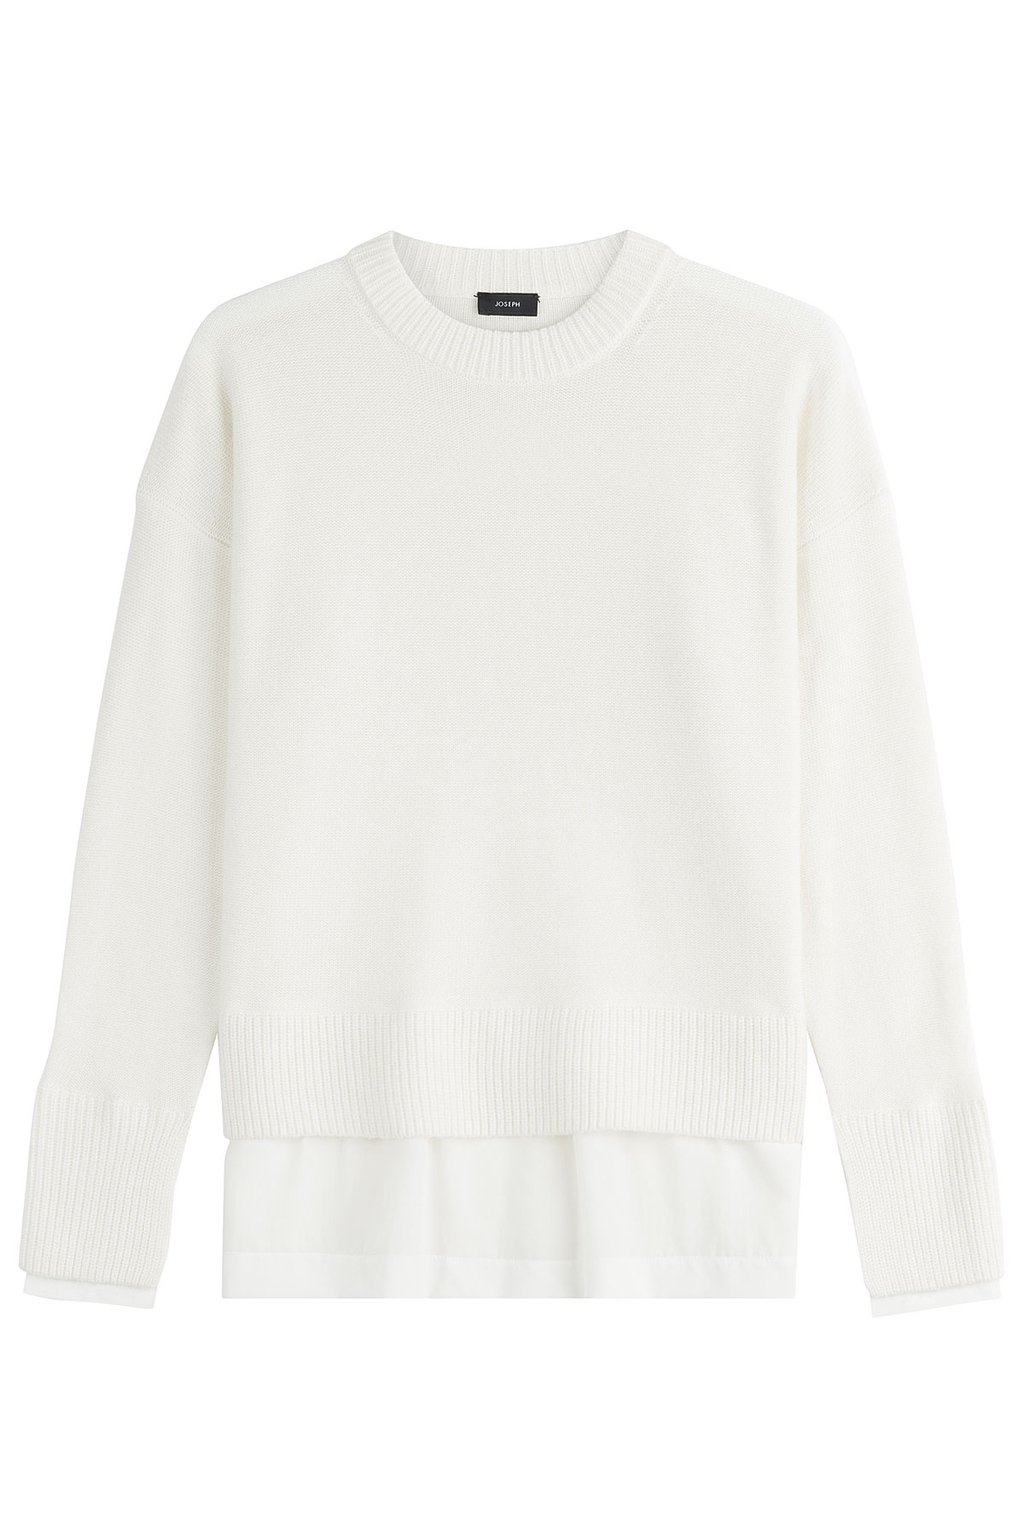 Layered Wool Pullover - neckline: round neck; pattern: plain; style: standard; predominant colour: white; occasions: casual, creative work; length: standard; fibres: wool - 100%; fit: loose; sleeve length: long sleeve; sleeve style: standard; texture group: knits/crochet; pattern type: knitted - fine stitch; wardrobe: basic; season: a/w 2016